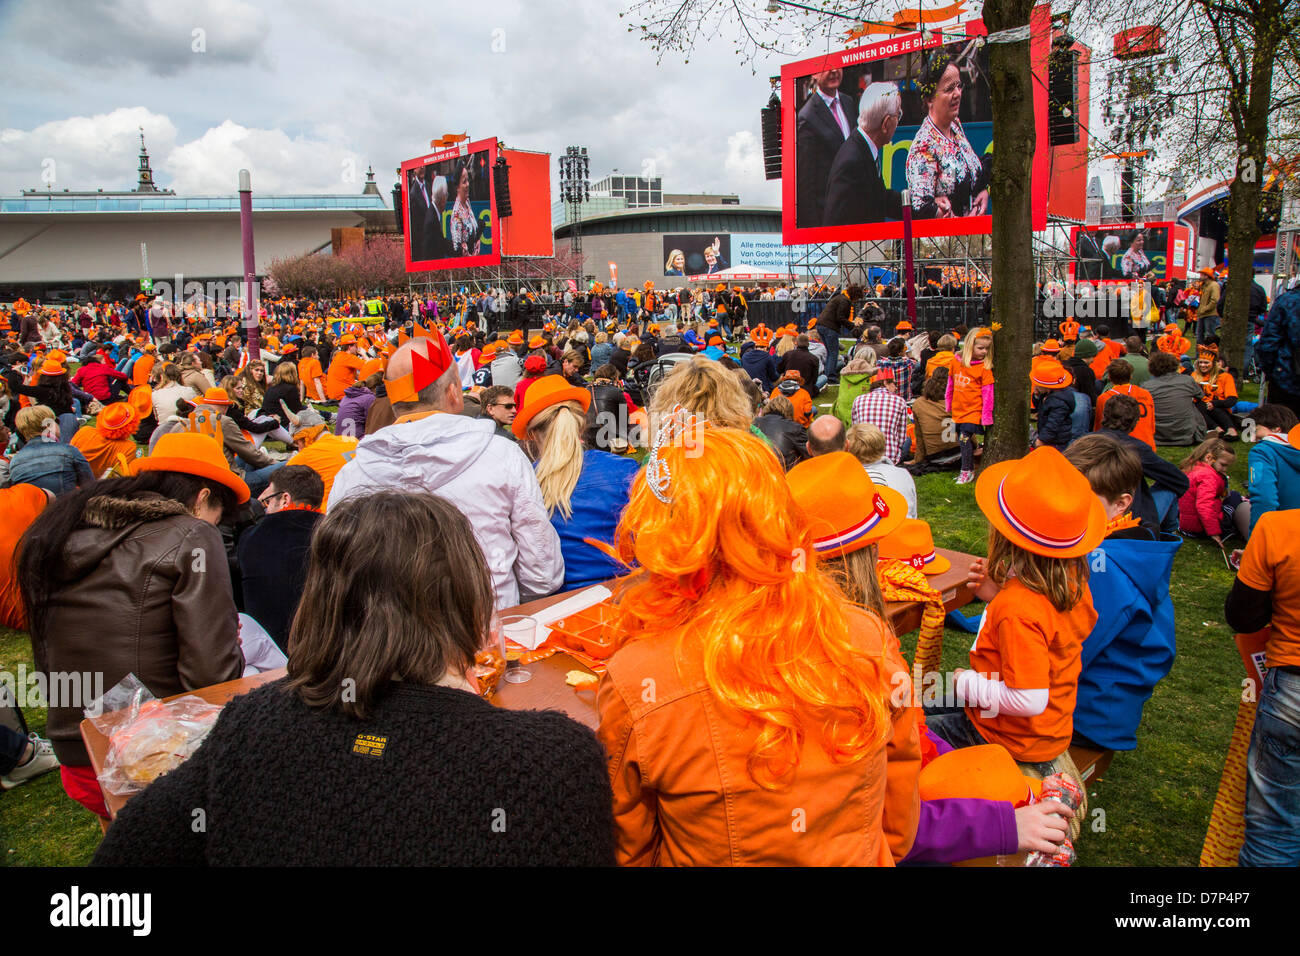 People celebrating annual Queens day on Museums Plein square in Amsterdam. Live TV coverage of enthronement of King - Stock Image